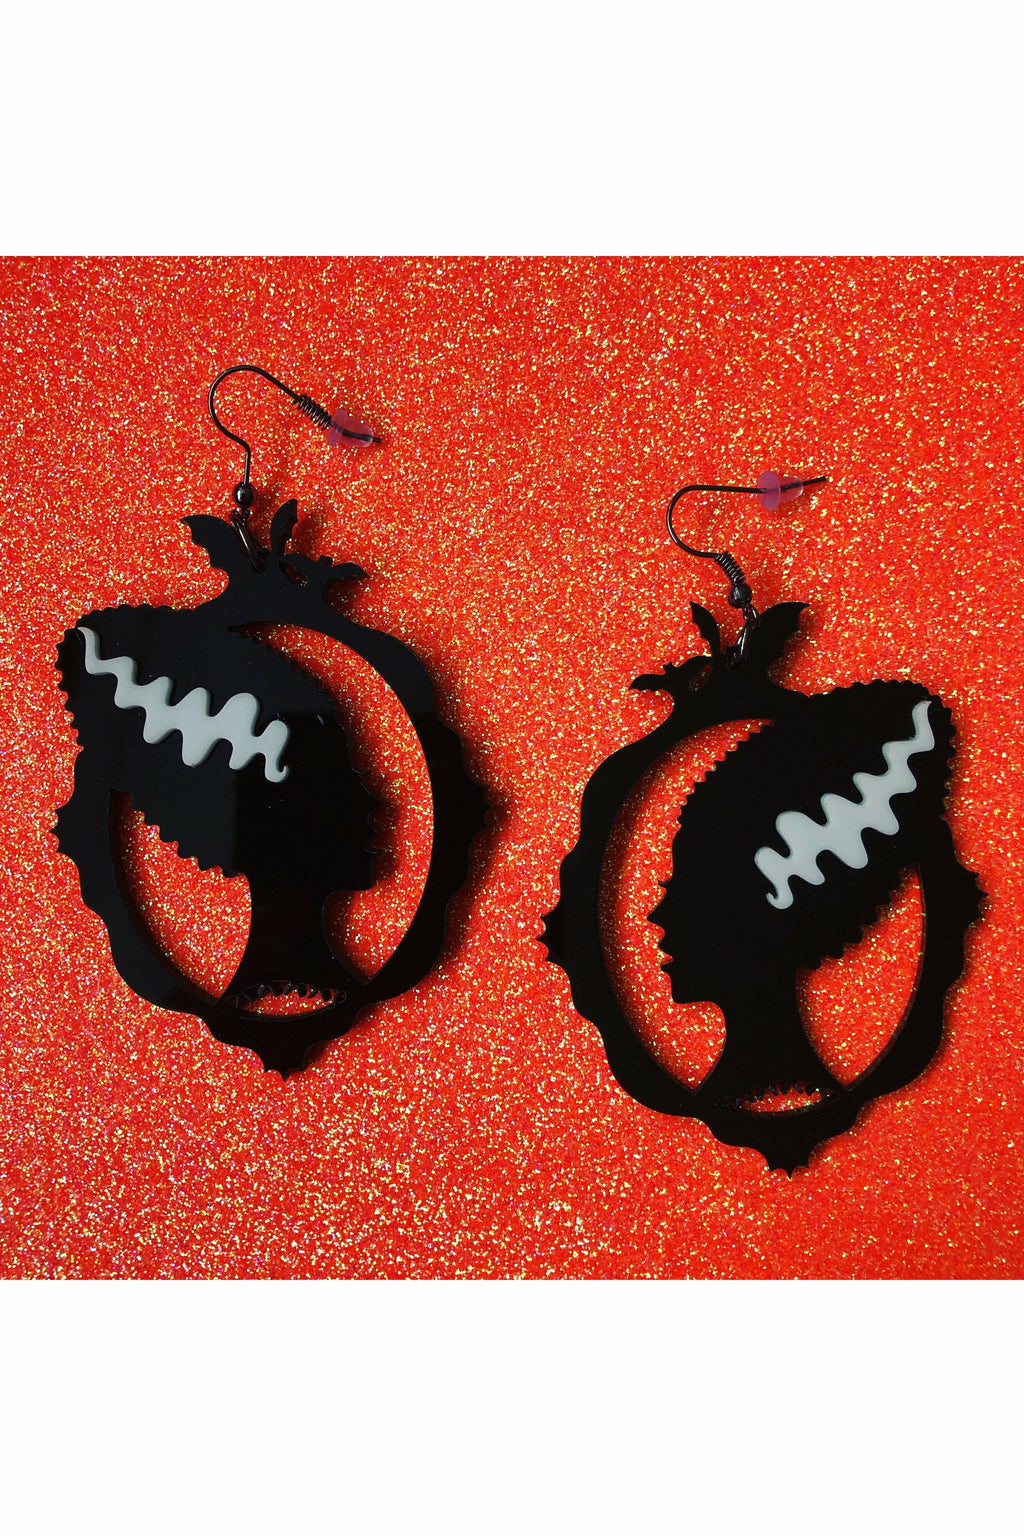 Franken-bride Earrings